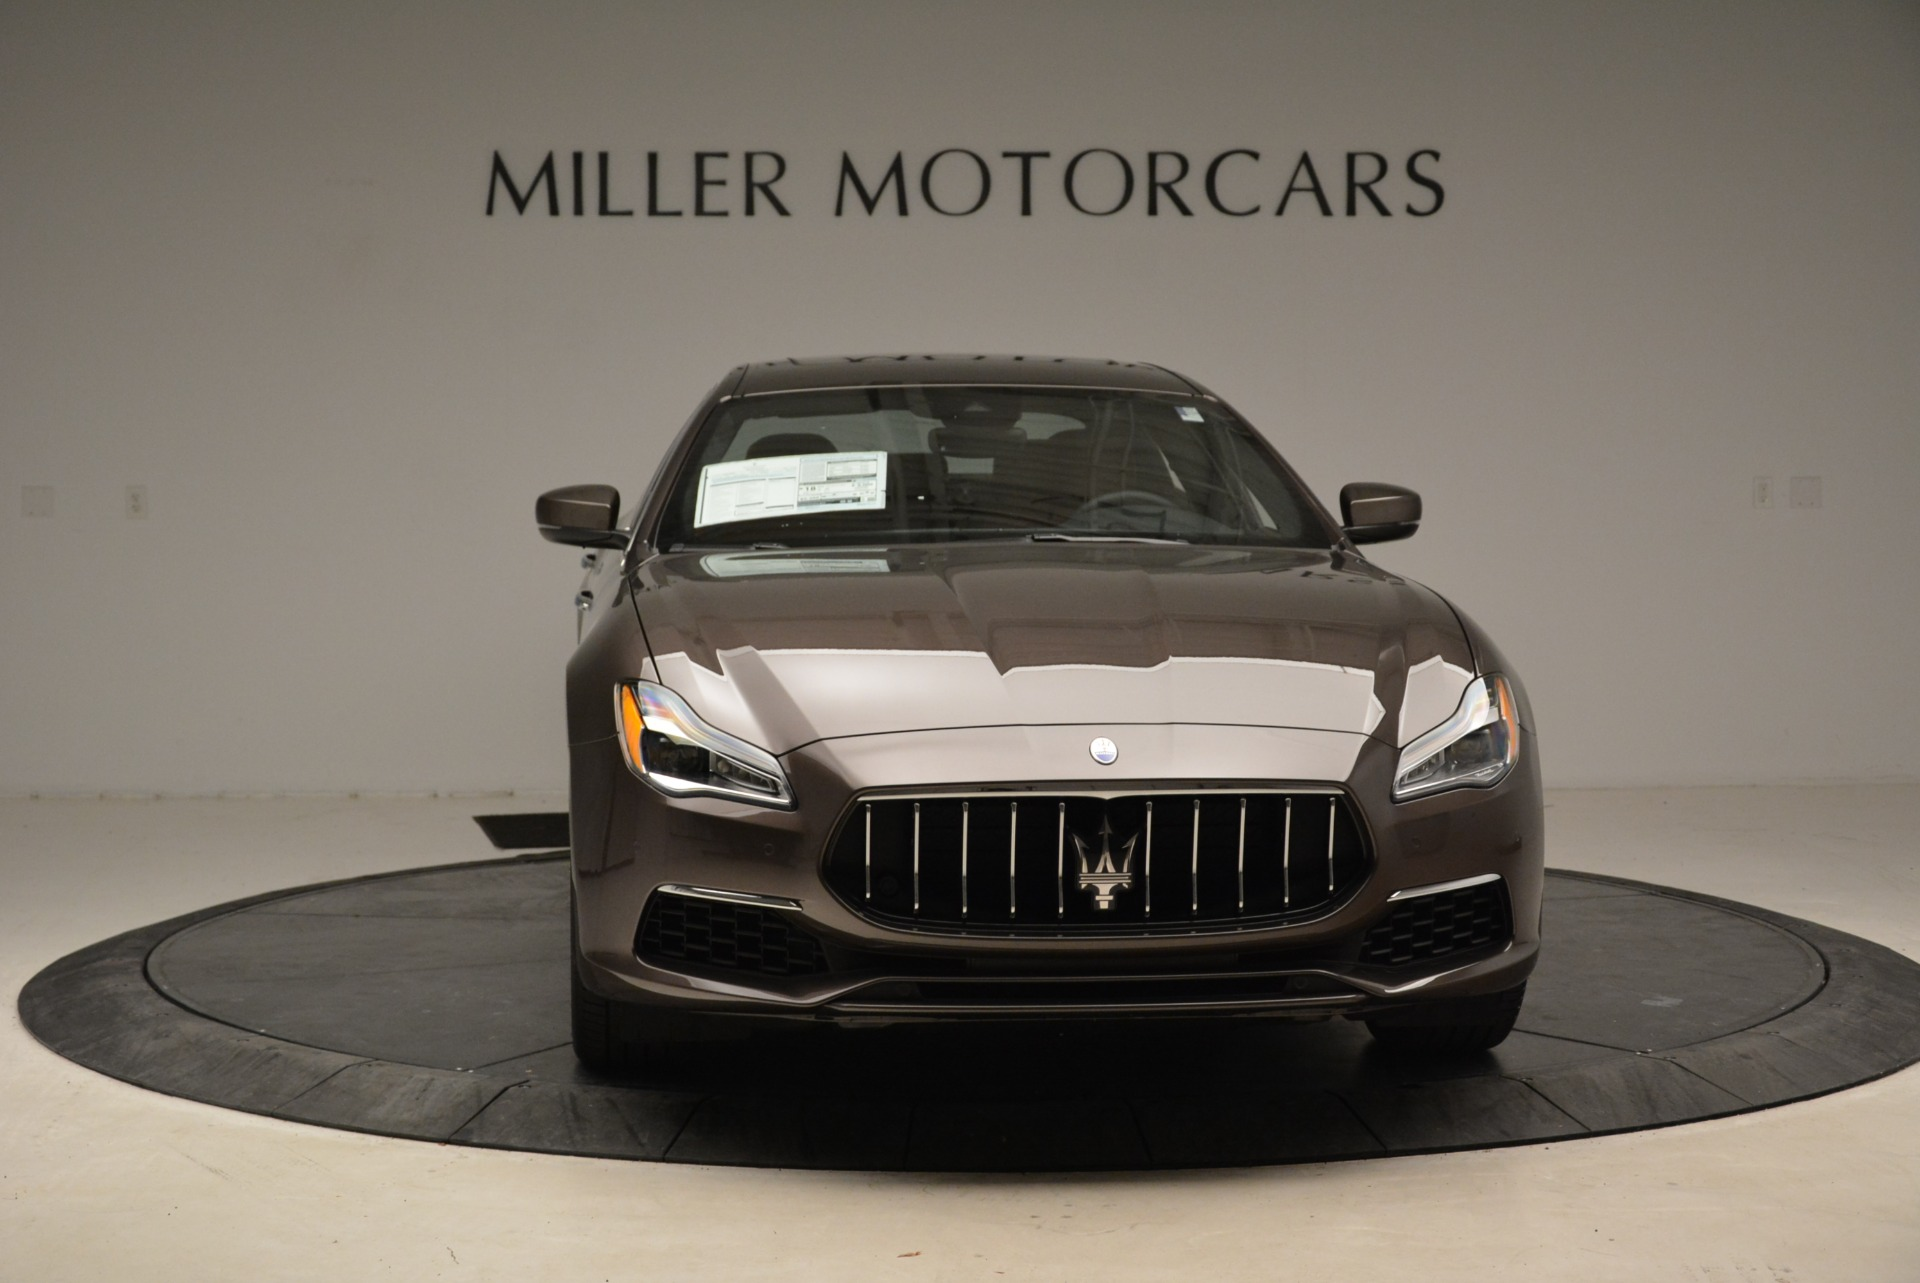 New 2018 Maserati Quattroporte S Q4 GranLusso For Sale In Greenwich, CT 1926_p12